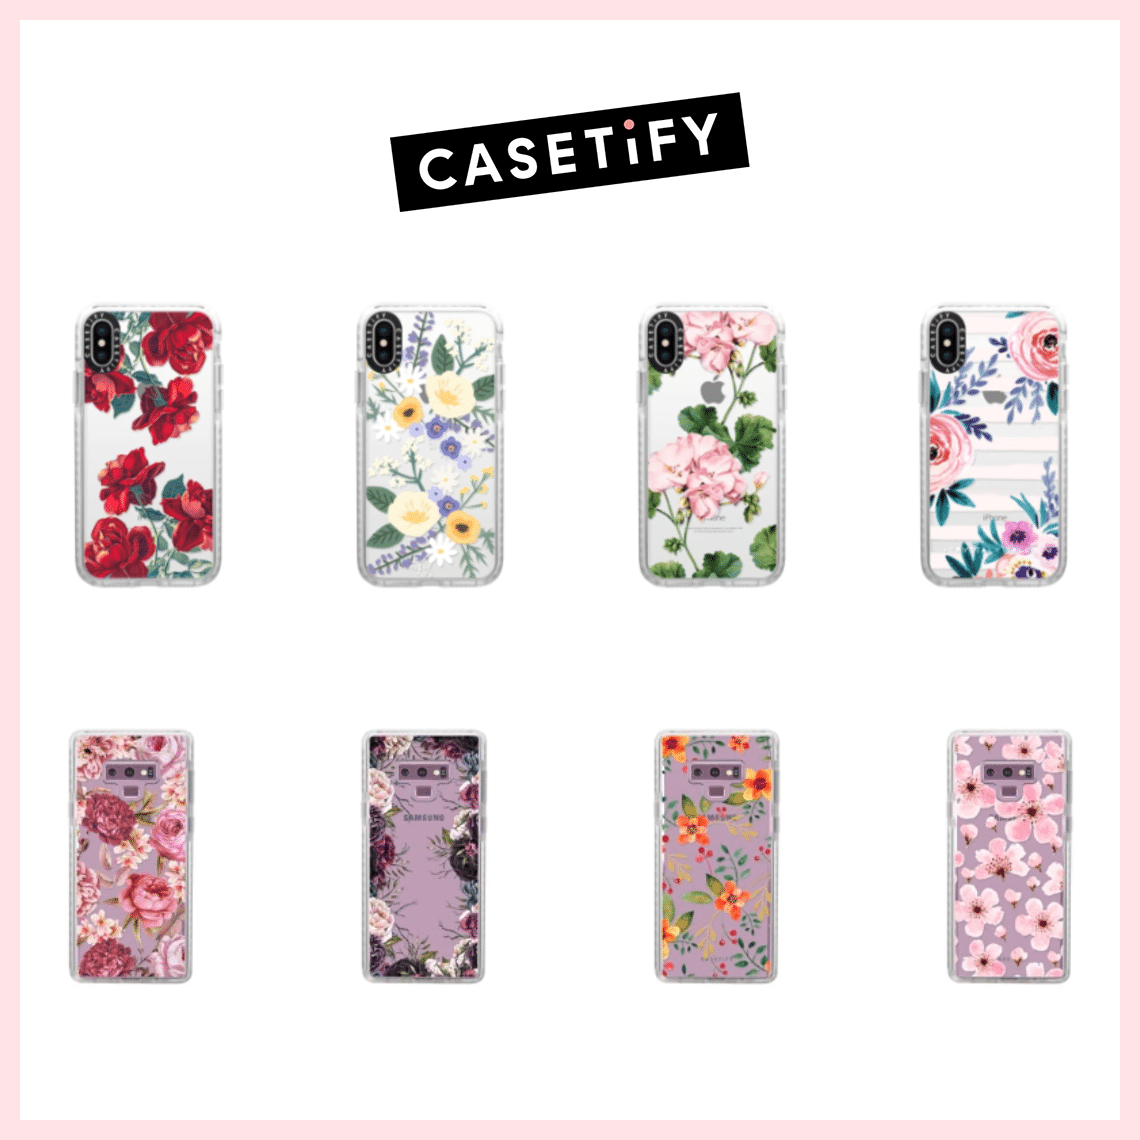 Casetify smartphone cases are feminine and fun. Perfect for Galentine's Day or other special occasions. They have cases for all your other electronic items too.